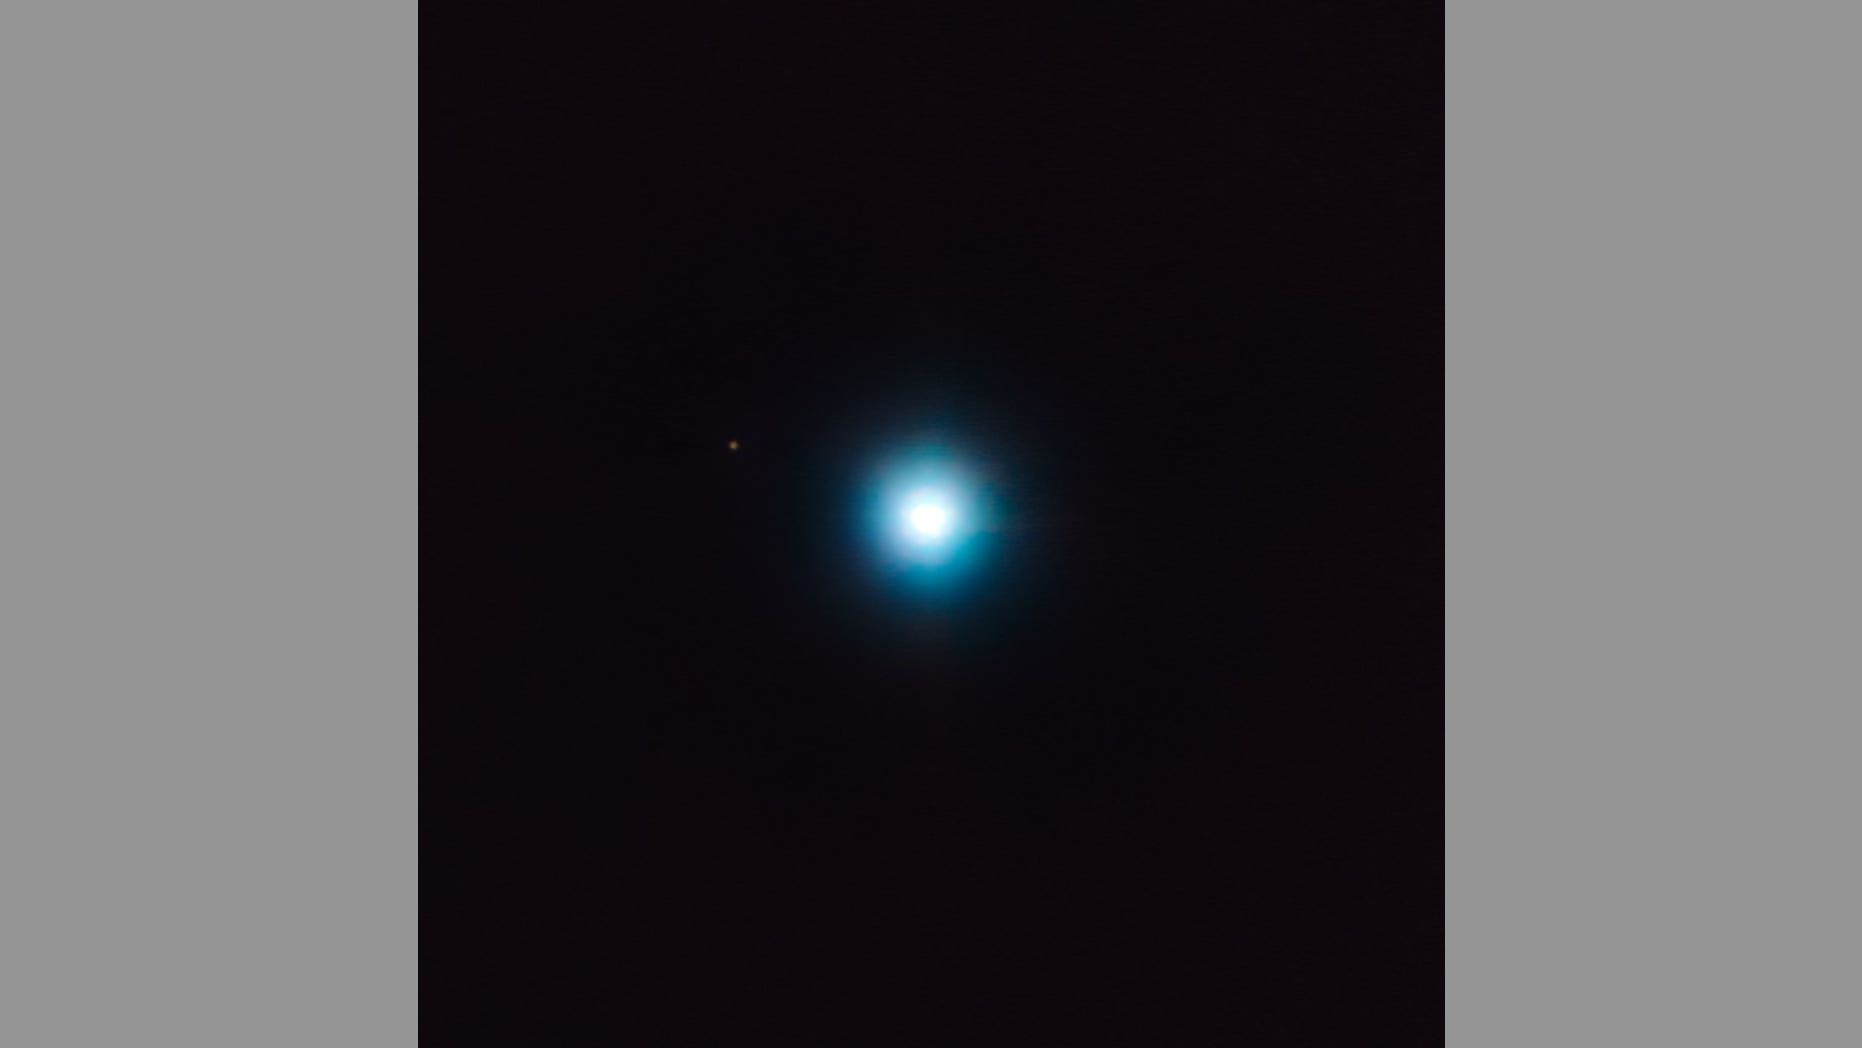 The Very Large Telescope in Chile captured this direct image of a likely exoplanet to the upper left of the star CVSO 30 (which is the bluish-white blob at center).